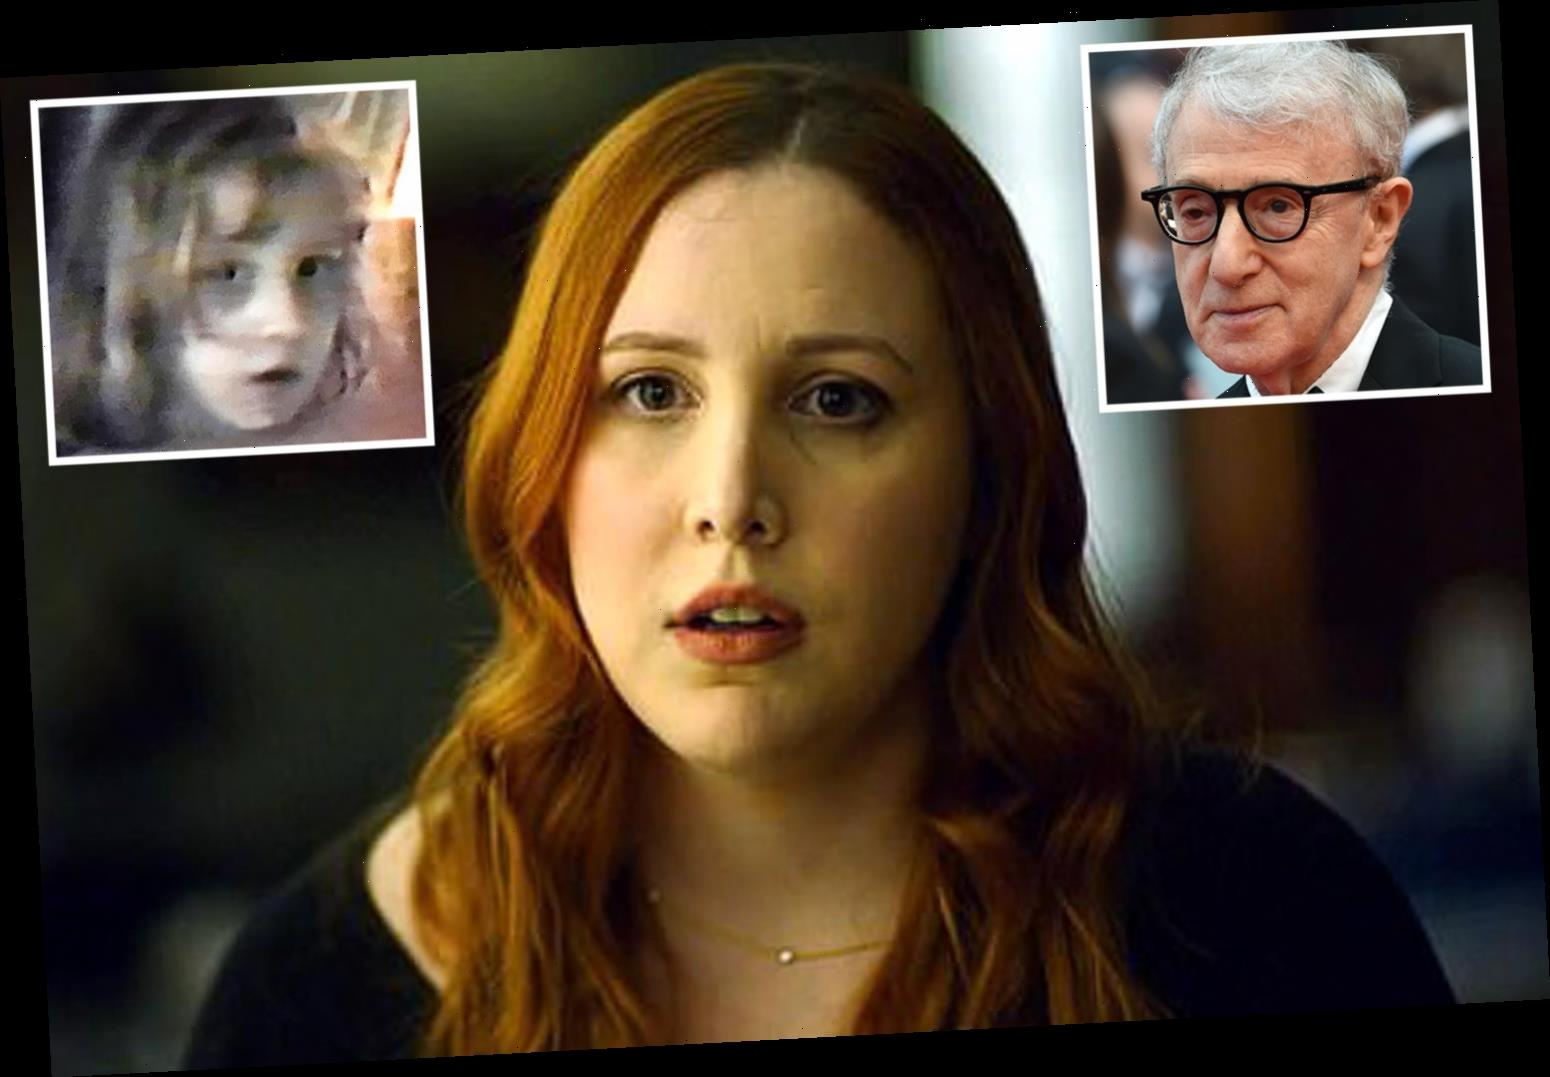 Woody Allen's daughter Dylan Farrow says he 'shoved her face into a plate of hot spaghetti' and abused her in the attic